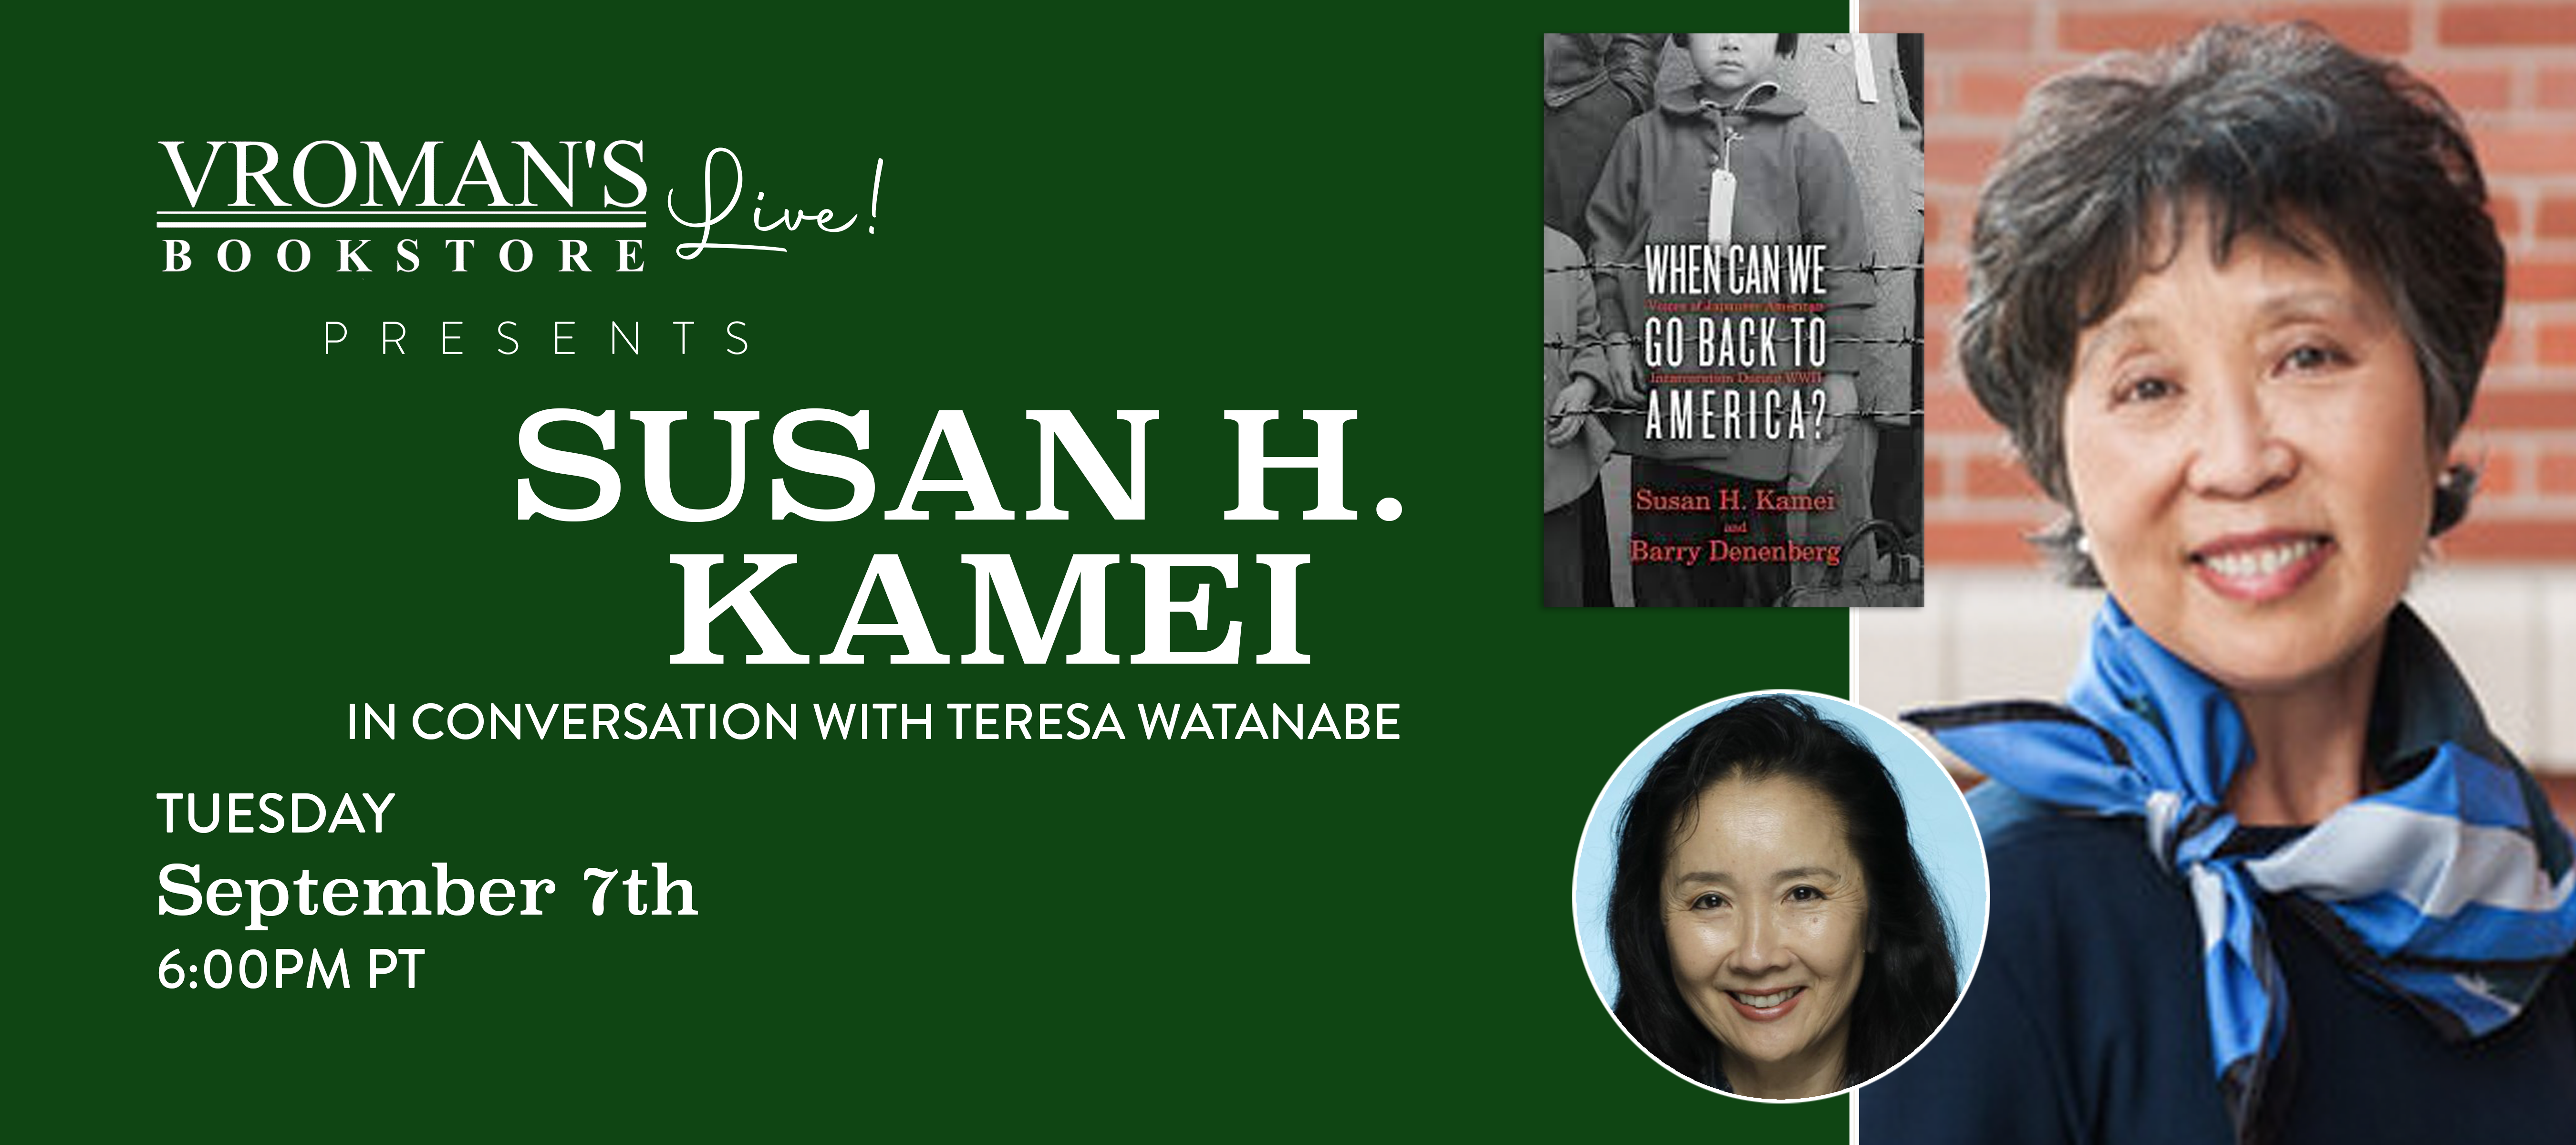 Image of green banner with Susan H. Kamei, in conversation with Teresa Watanabe, discusses When Can We Go Back to America? Voices of Japanese American Incarceration During WWII on Tuesday September 7th, 6:00pm PST